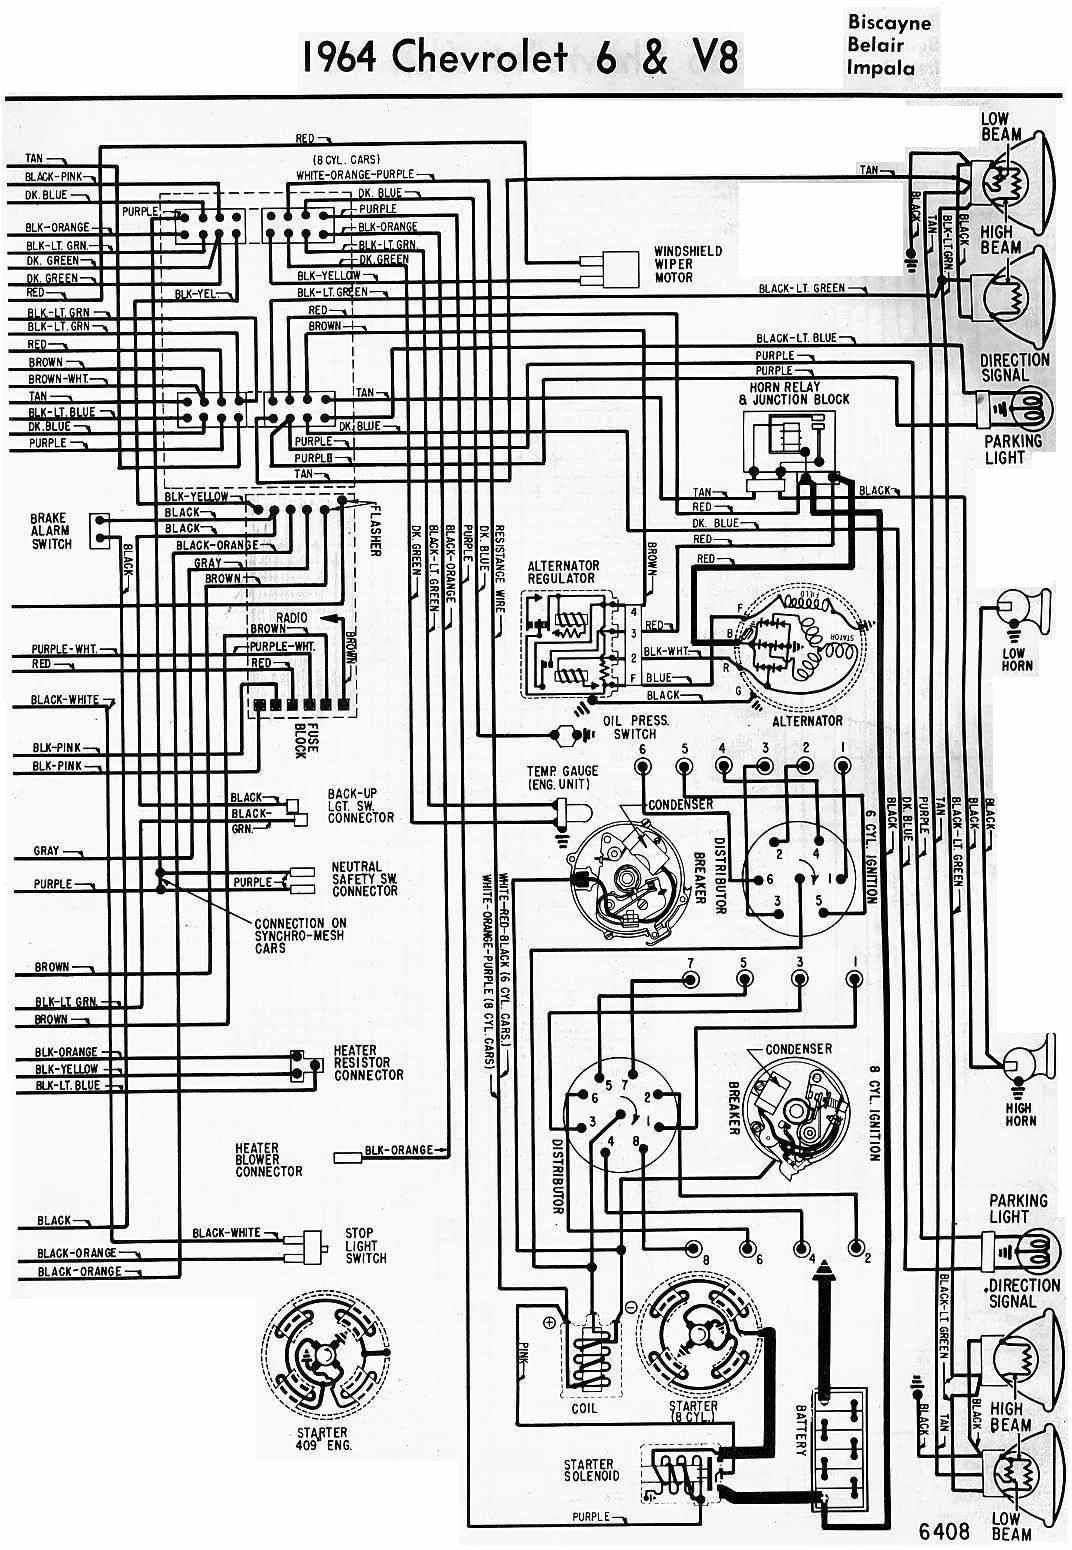 Electrical+Wiring+Diagram+Of+1964+Chevrolet+6+And+V8?resize=665%2C962 sr20de wiring harness diagram wiring diagram sr20det wiring harness at aneh.co